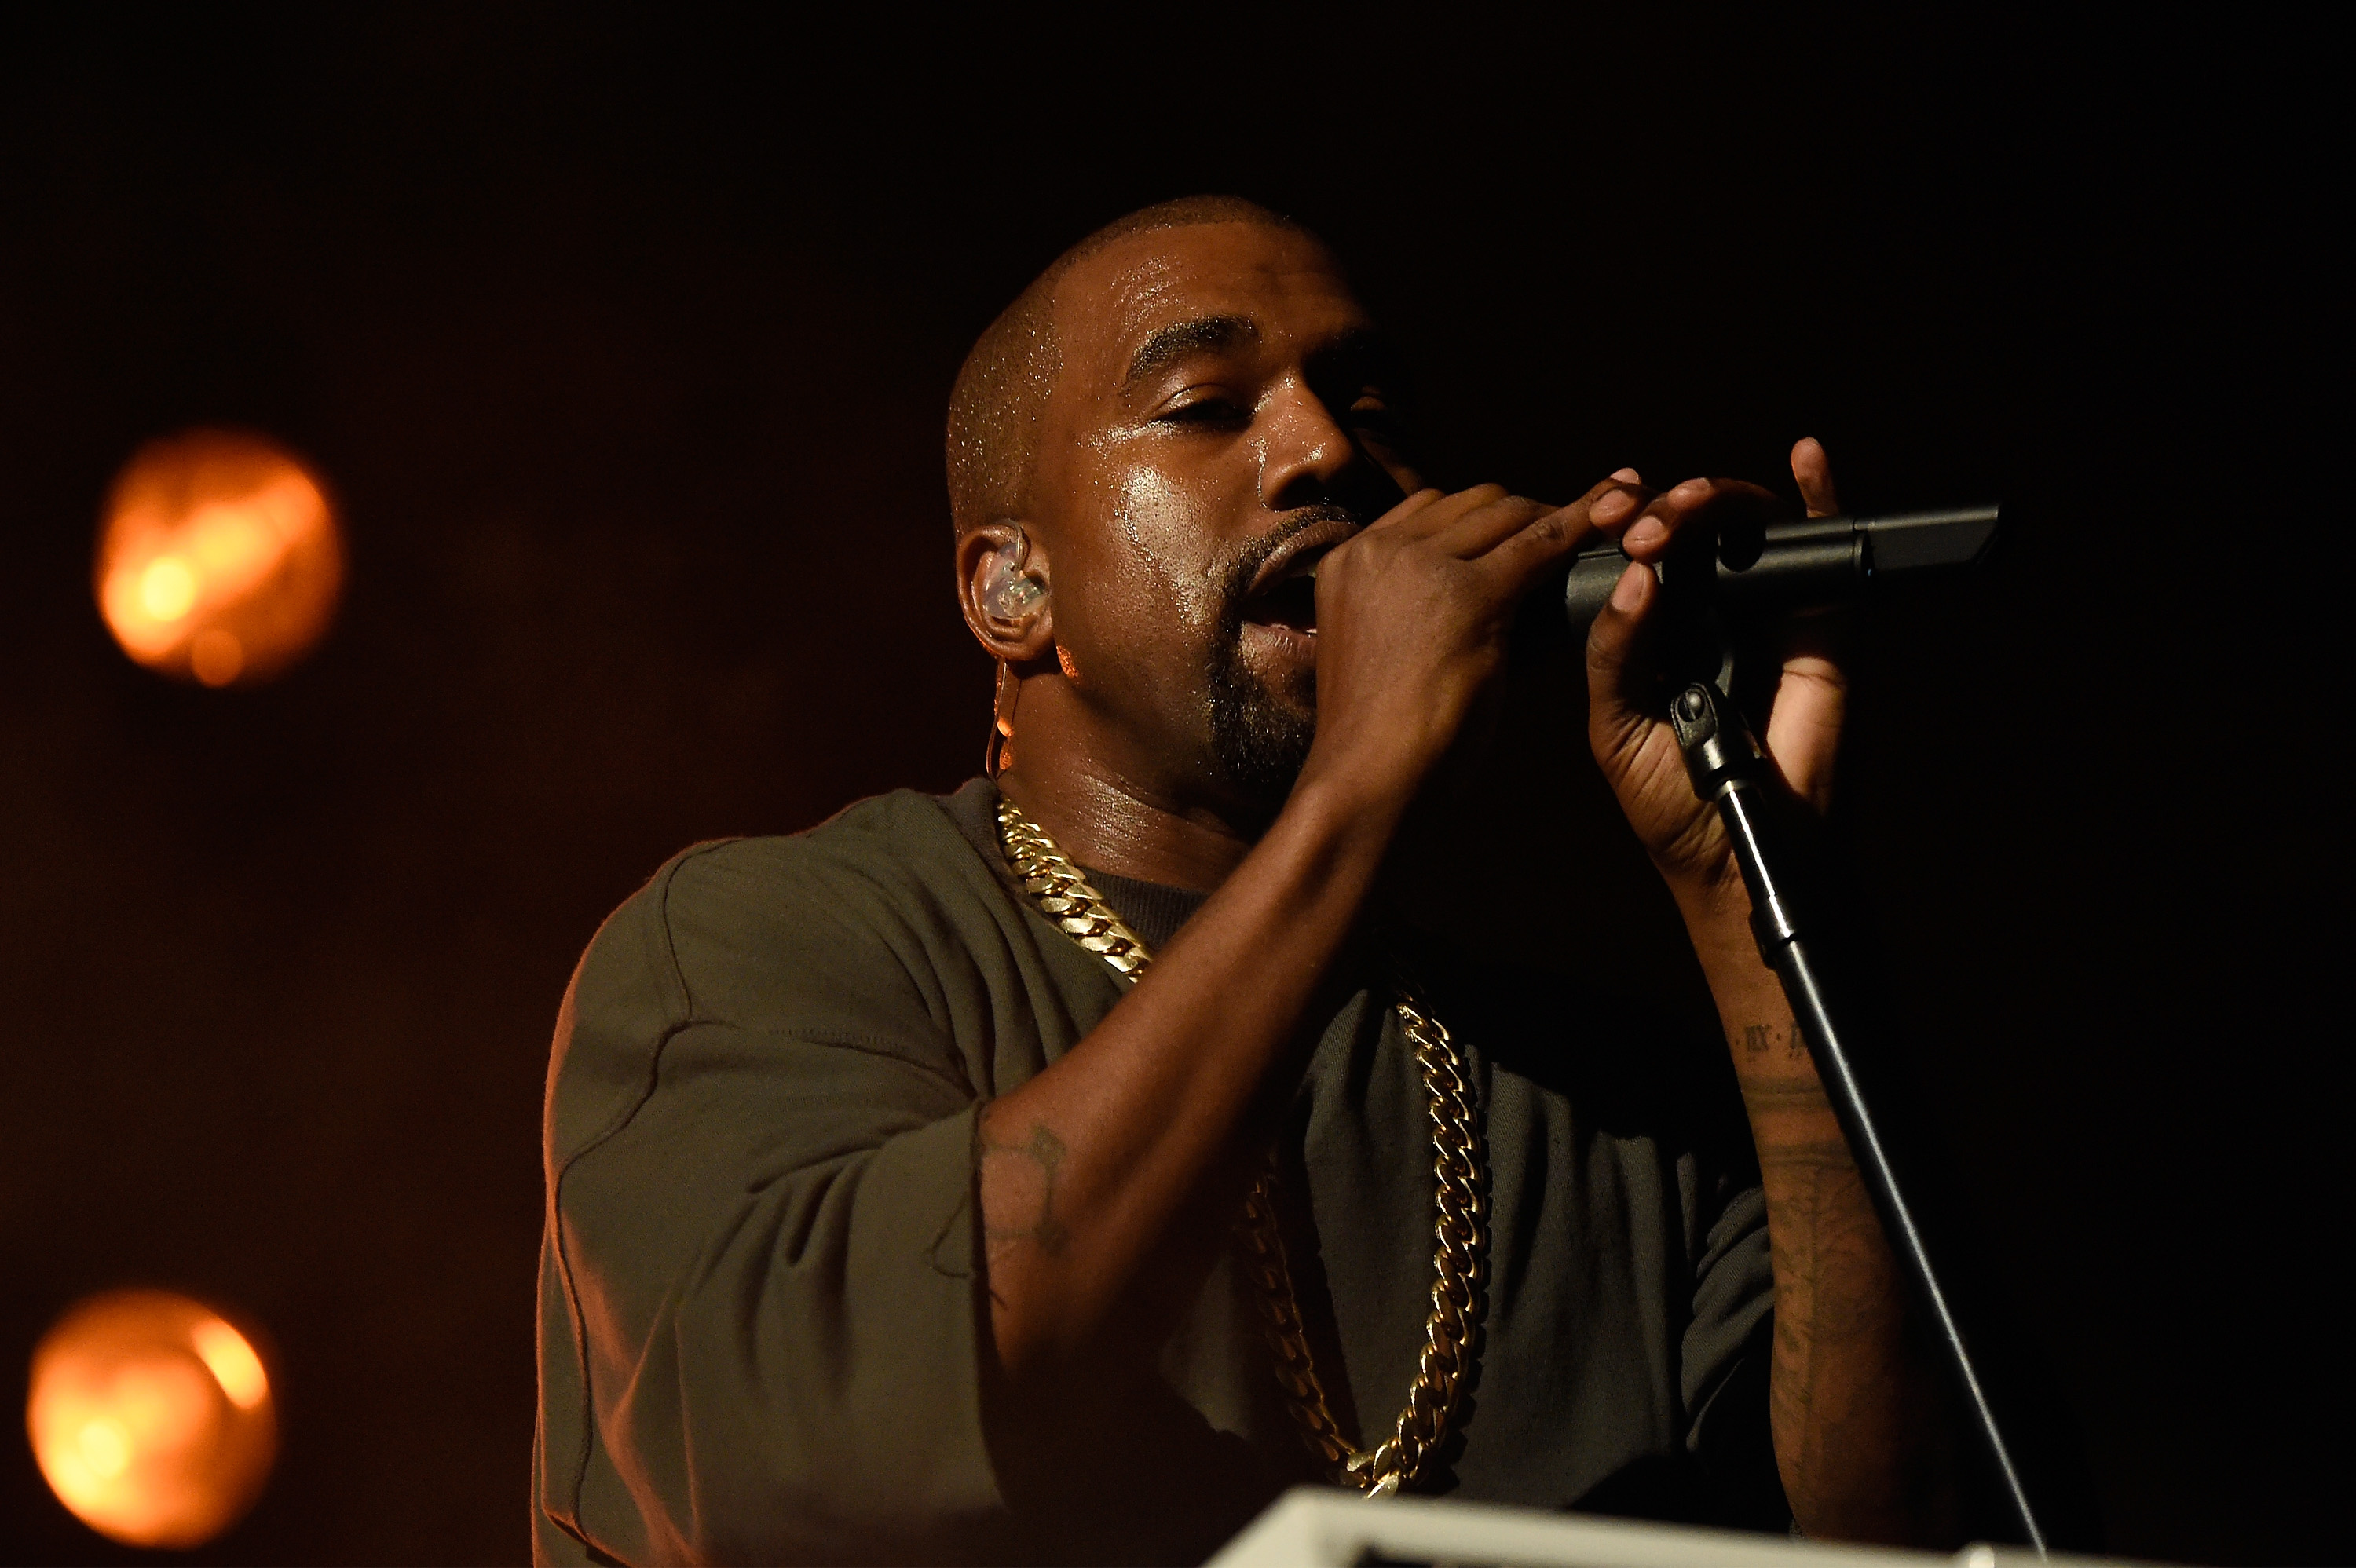 KANYE WEST | SELMA ANGERS ACADEMY | AND MORE - The Daily Double Talk LIVE @ 3:30 PM CST - Double